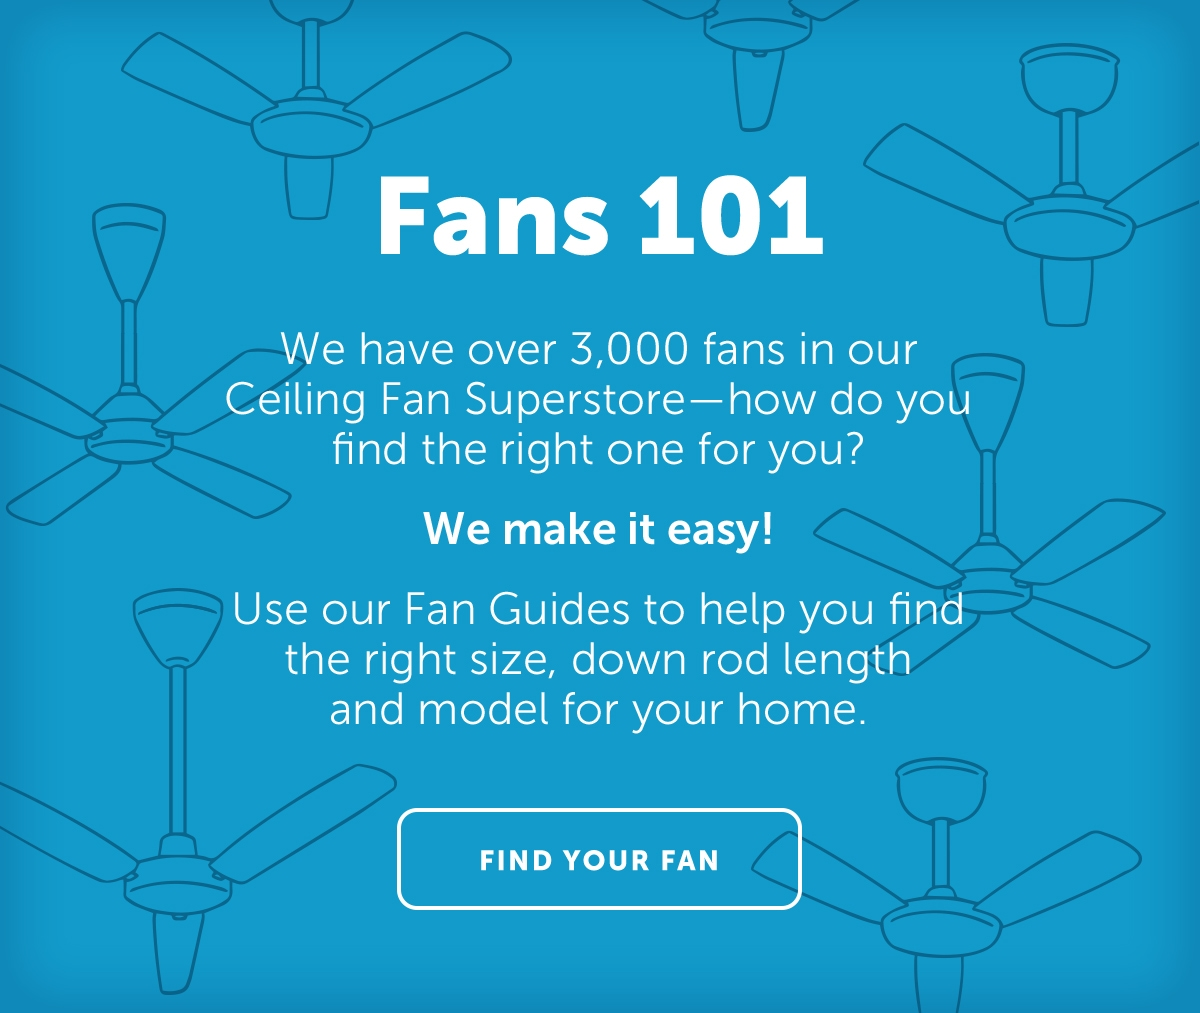 We have over 3000 fans in our Ceiling Fan Superstore How do you find the right one for you? We make it easy! Use our Fan Guide to help you find the right size, down rod length and model for your home. | Find Your Fan